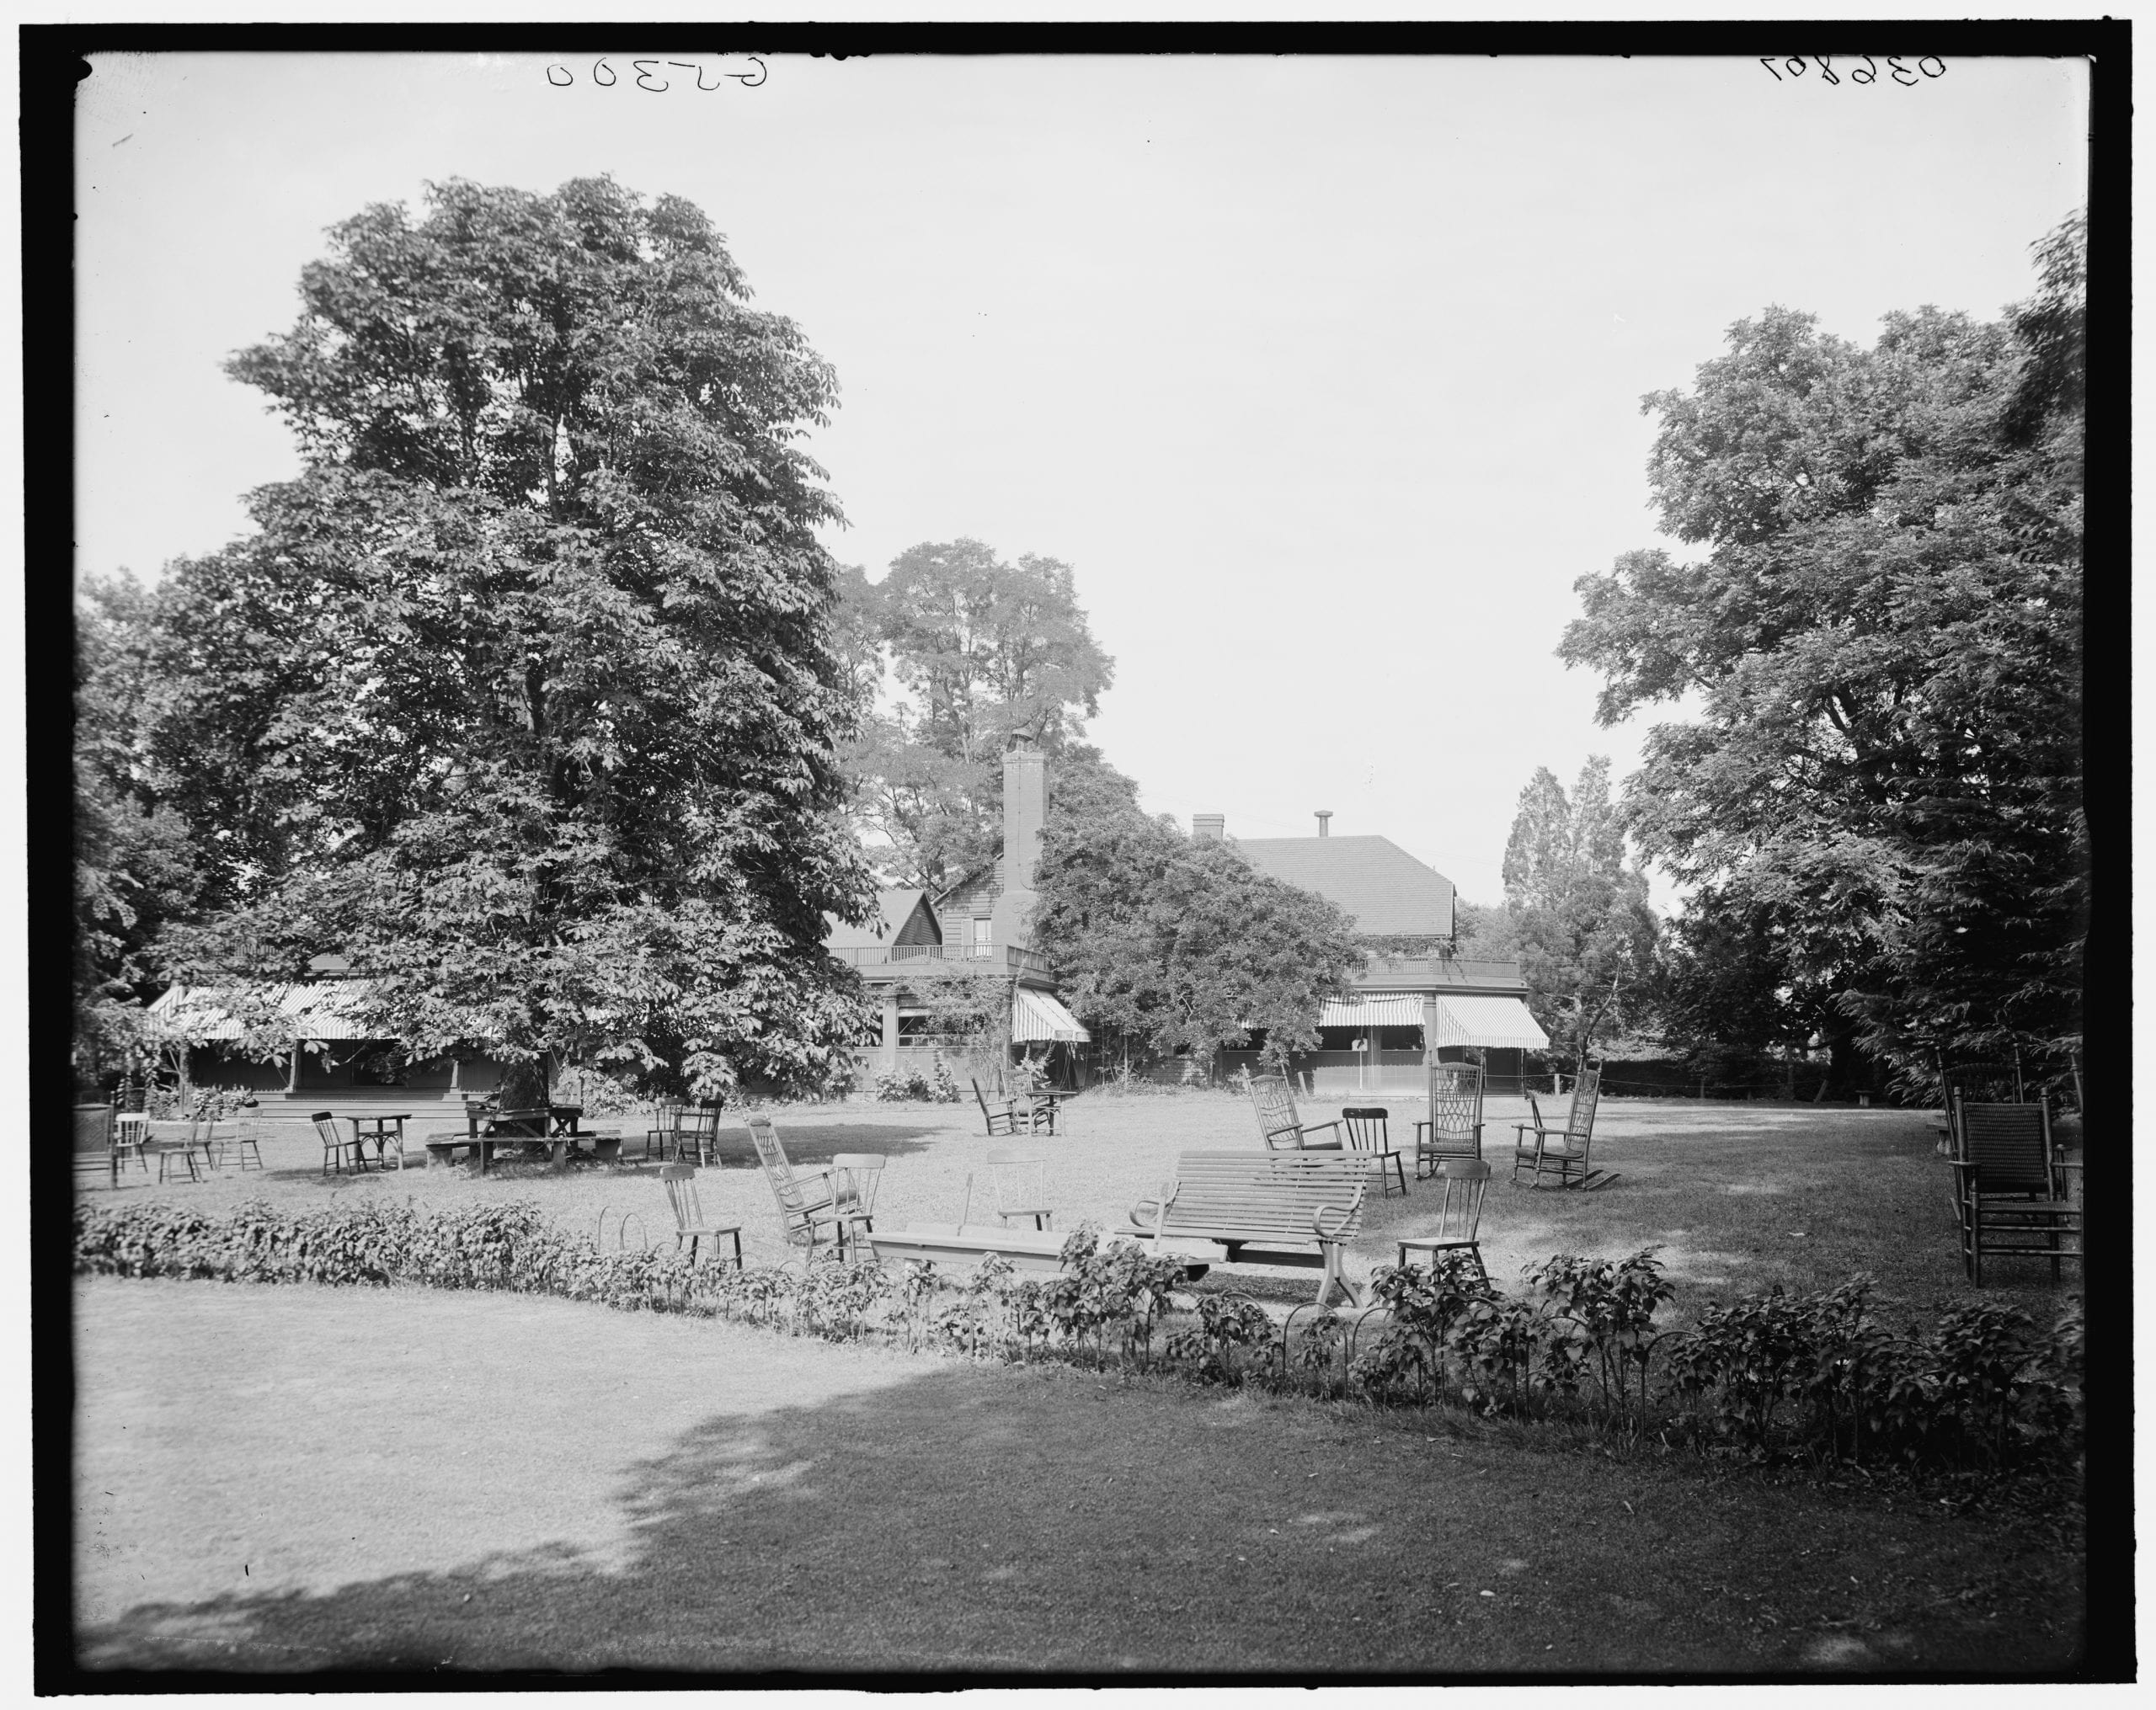 Chevy Chase Club in the 1920s